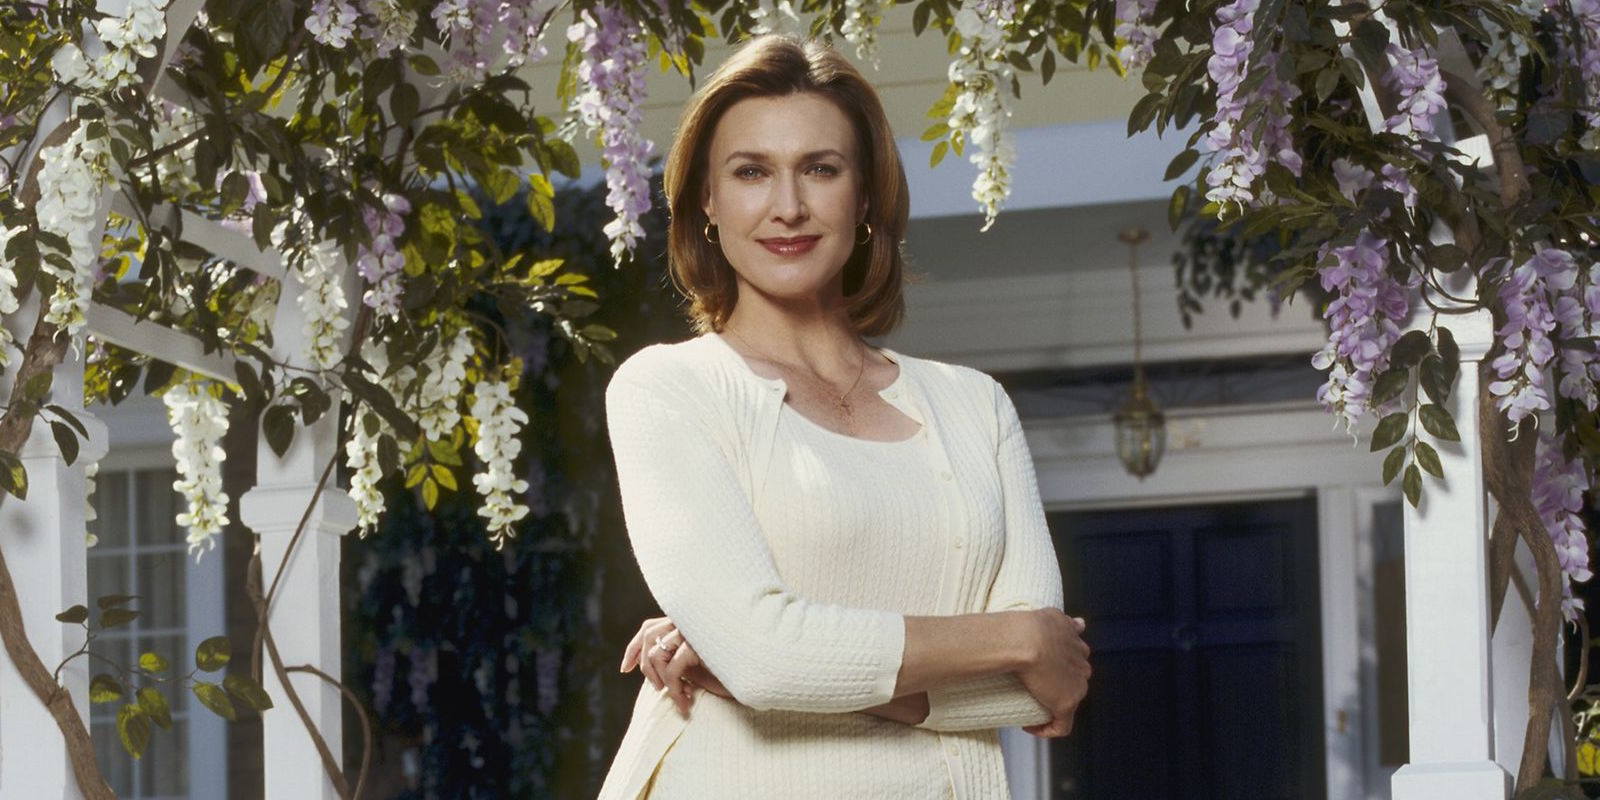 Desperate Housewives alum Brenda Strong joins Supergirl season 2